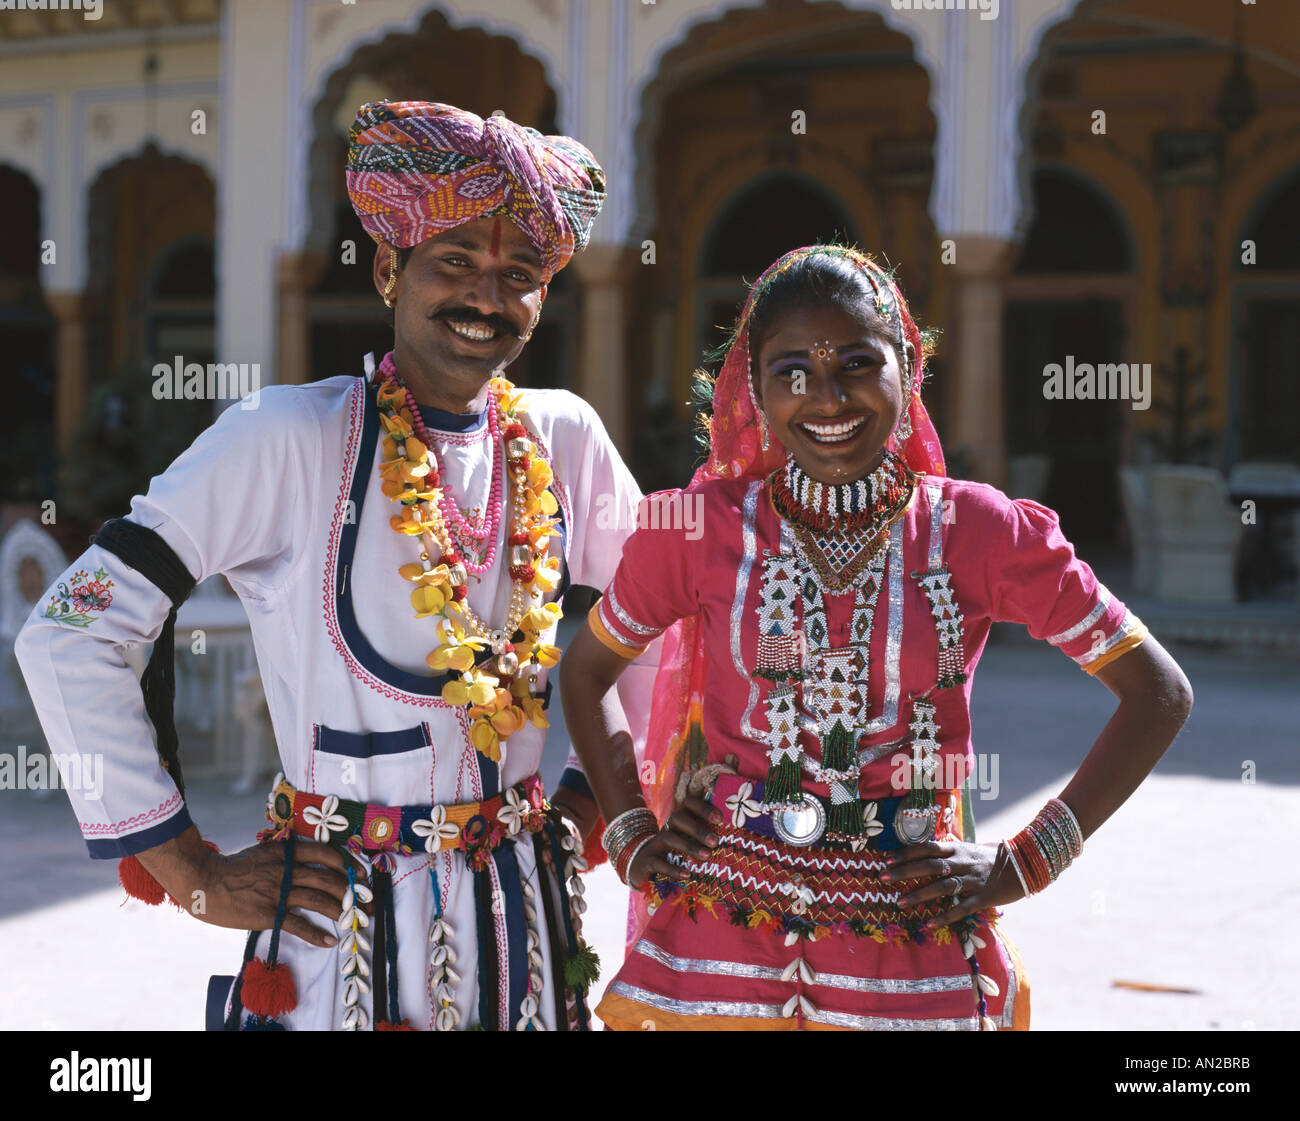 Couple / Man & Woman Dressed in Traditional Costume ...